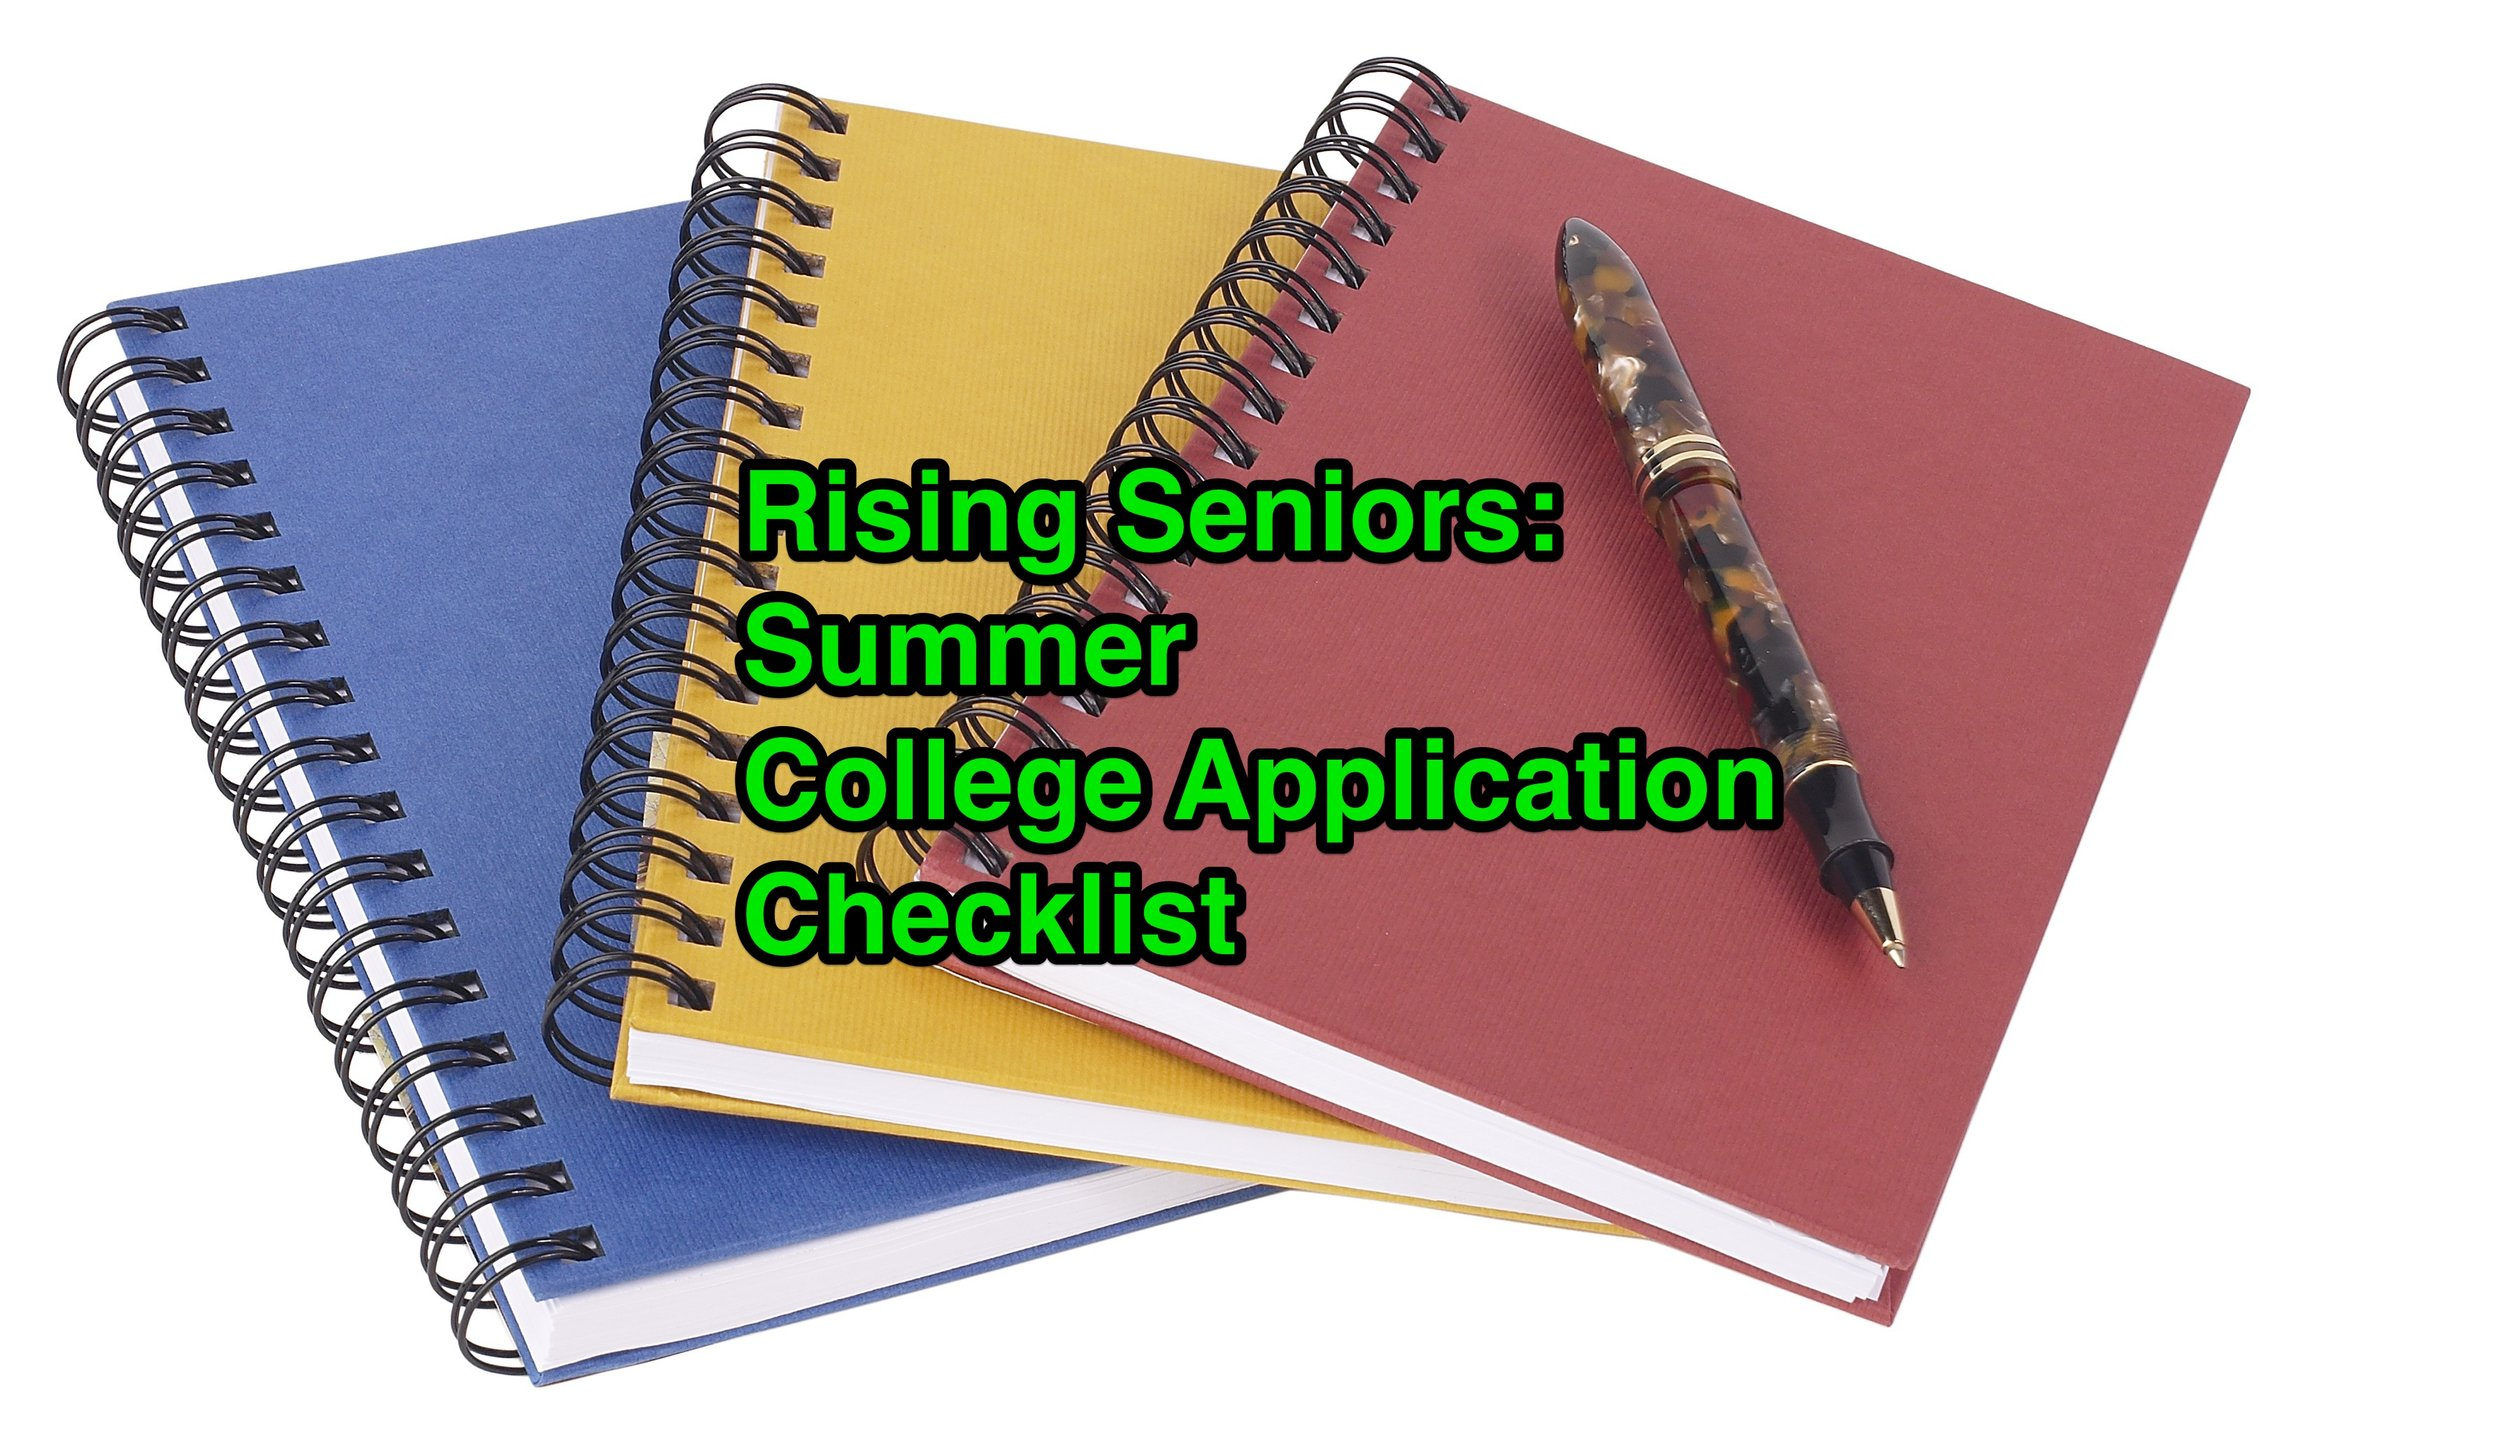 College Application Checklist for Rising Seniors